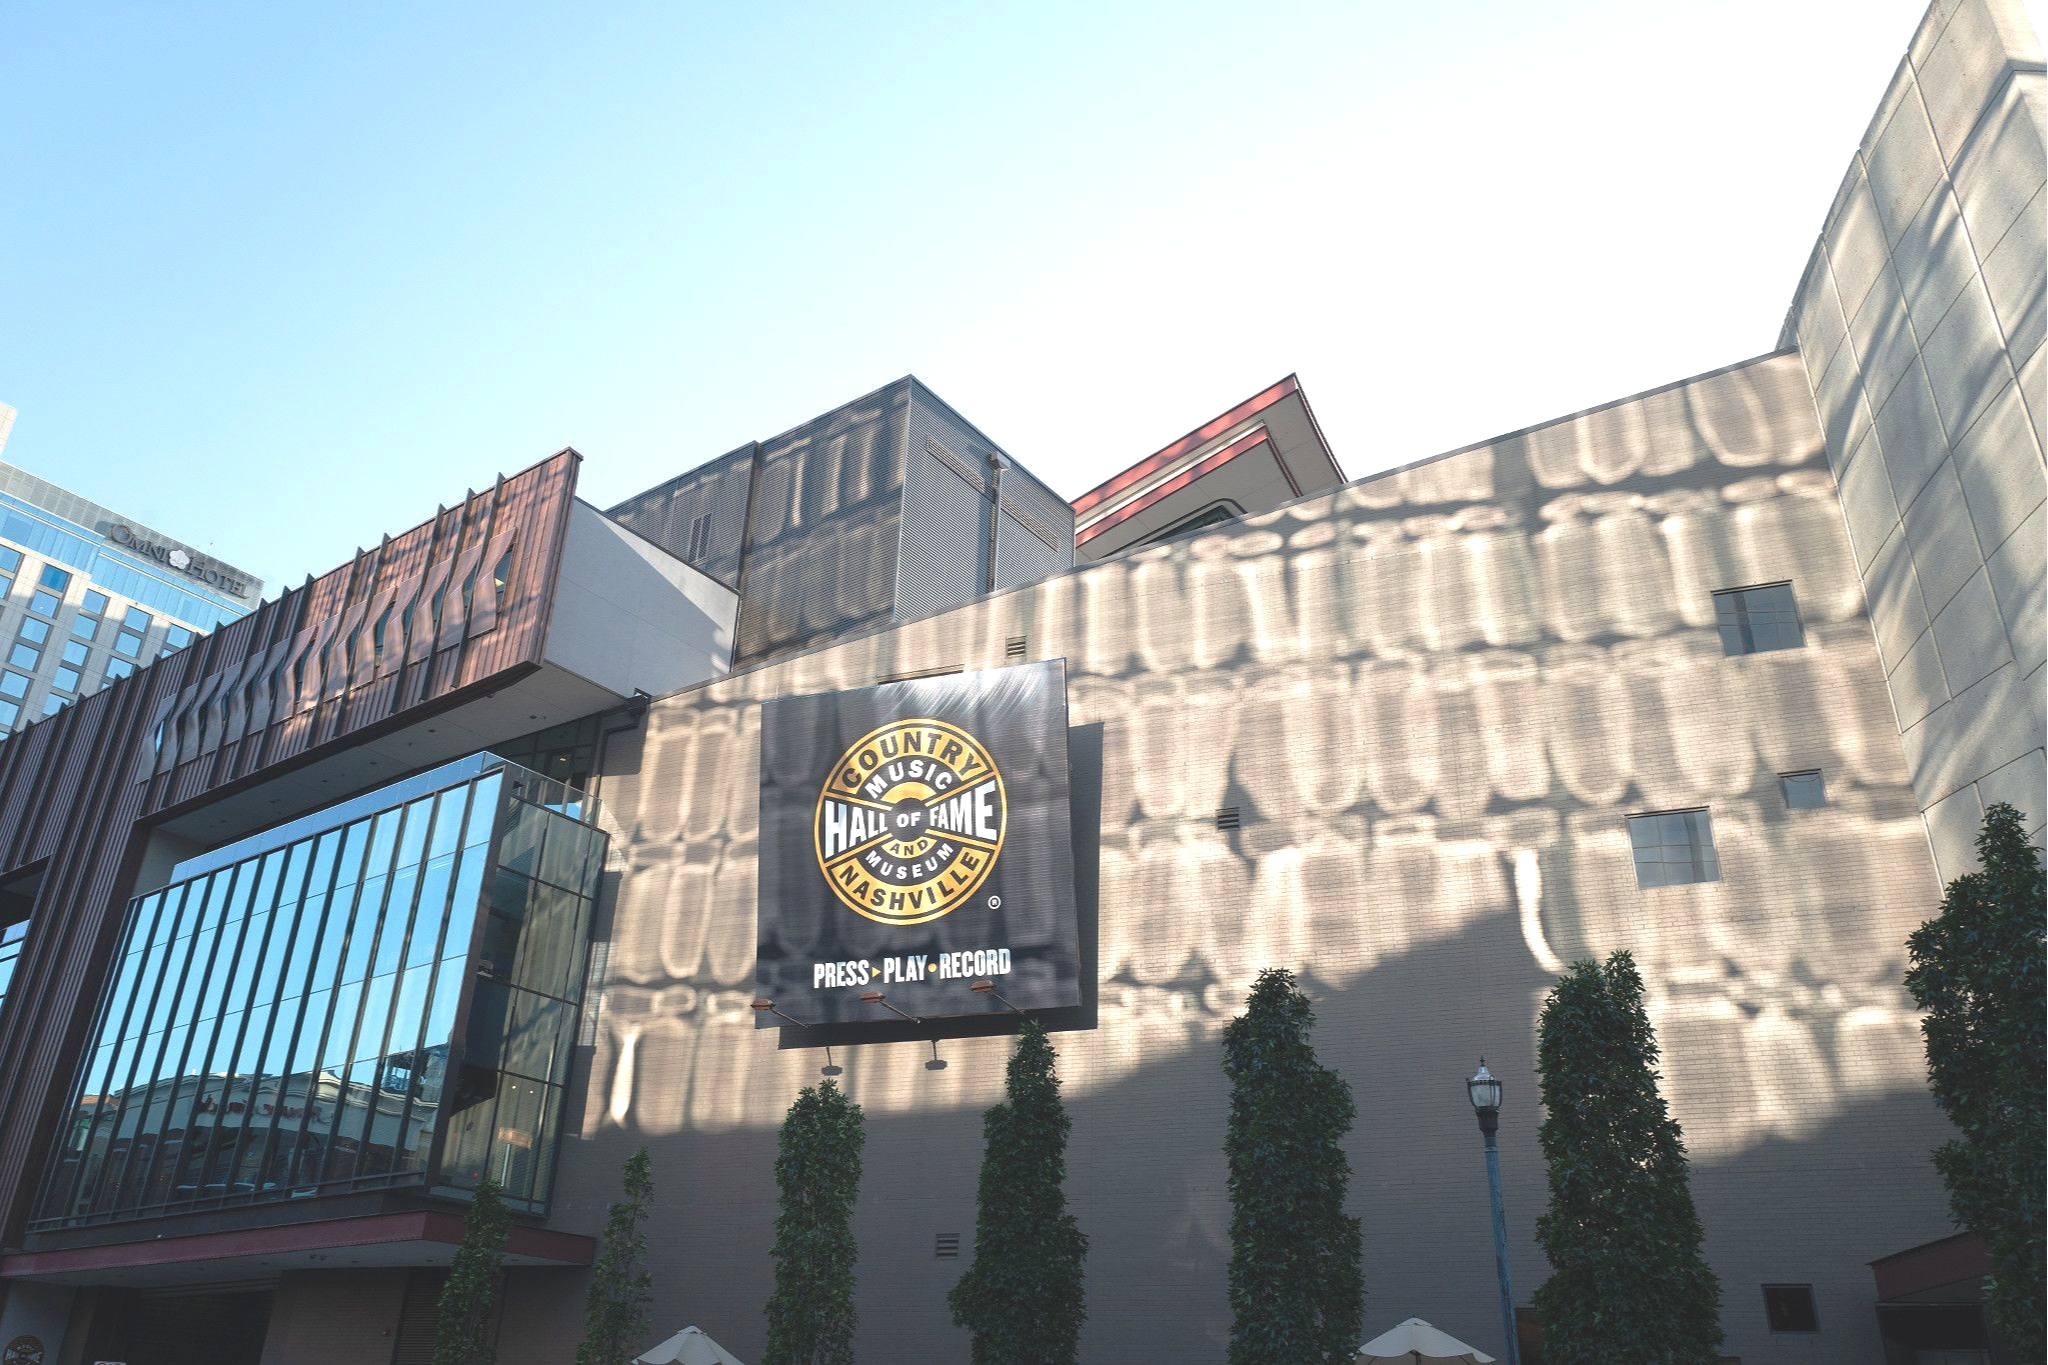 Country music hall of fame.